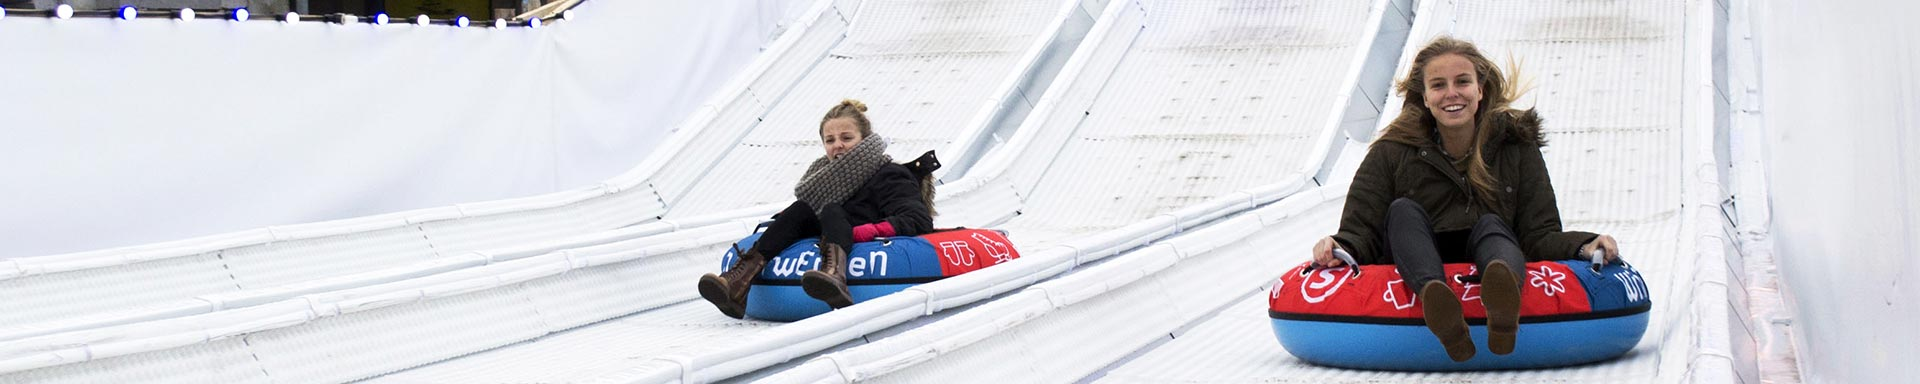 MICHAELA DORFMEISTER ON THE NEW SKI SLOPE